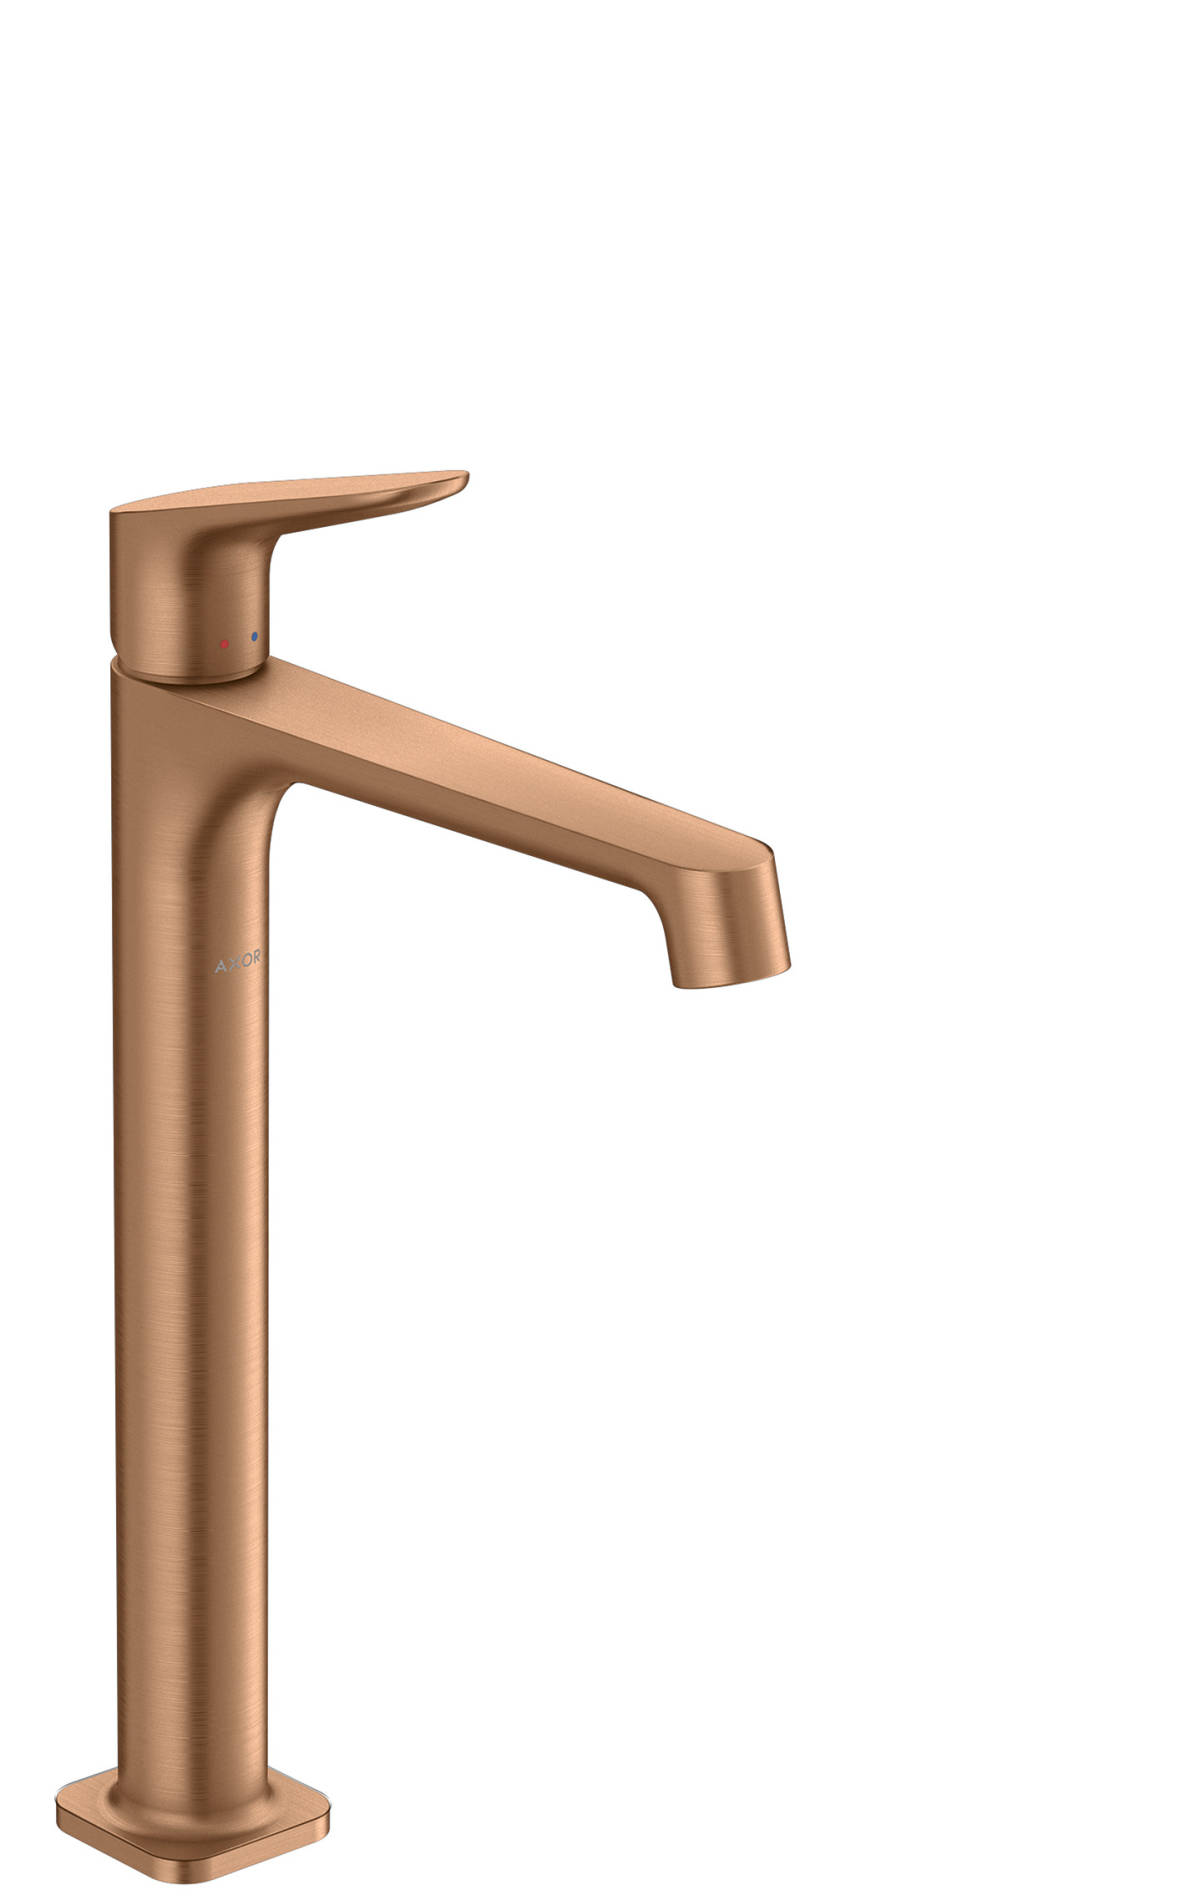 Single lever basin mixer 250 without pull-rod for wash bowls, Brushed Bronze, 34127140